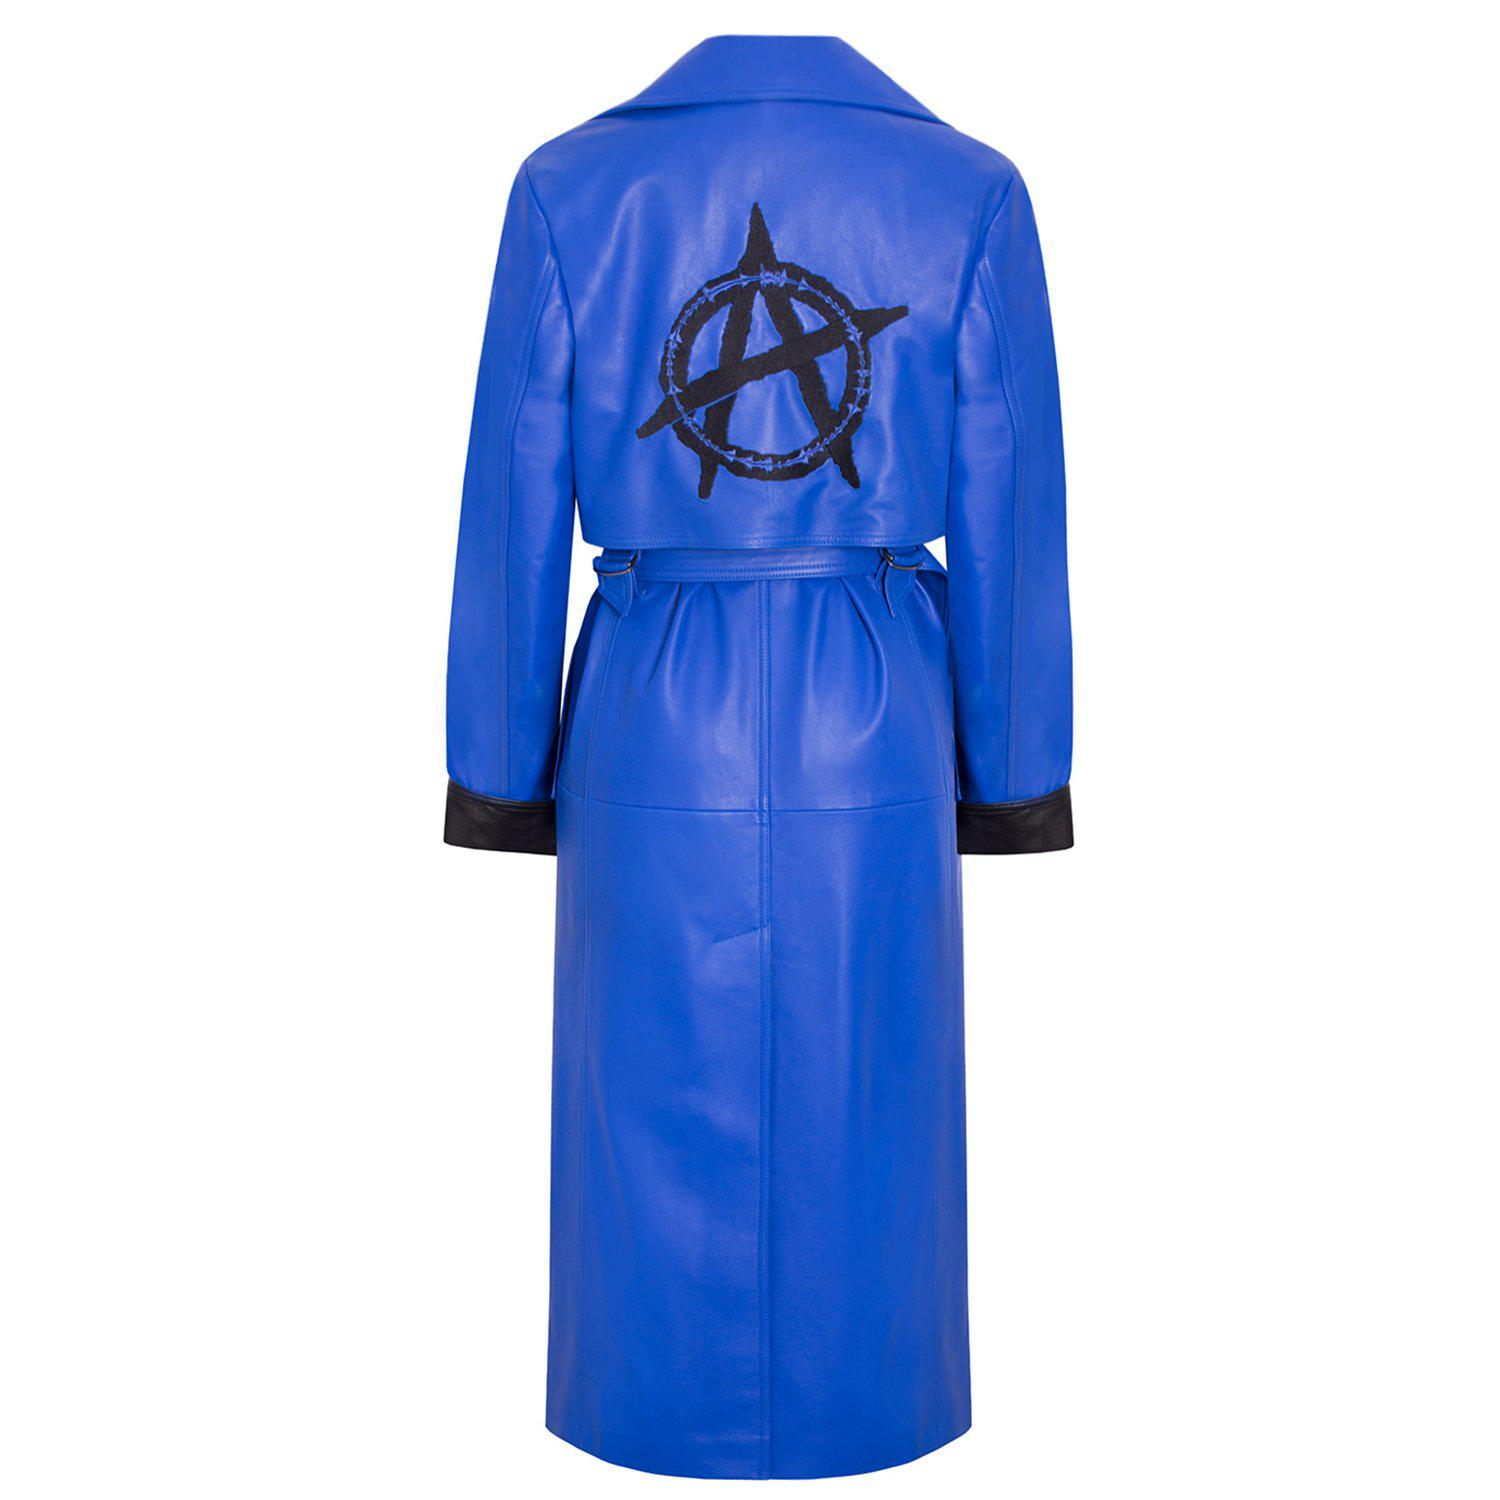 'Sky' Leather Trench Coat with Embroidery 1